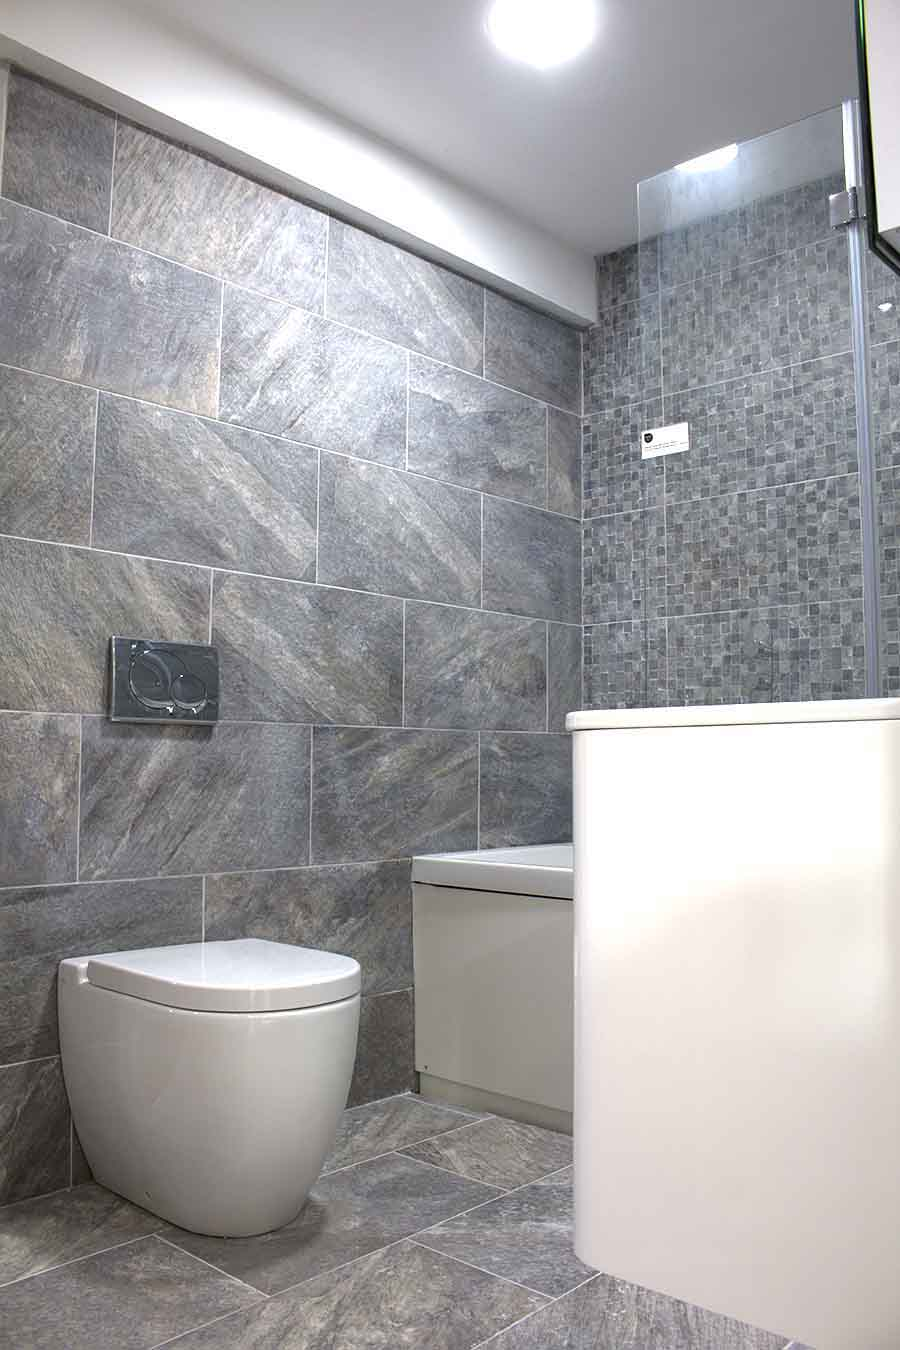 Roper Rhodes luxury bathroom suite with Marazzi stone effect wall and floor tiles